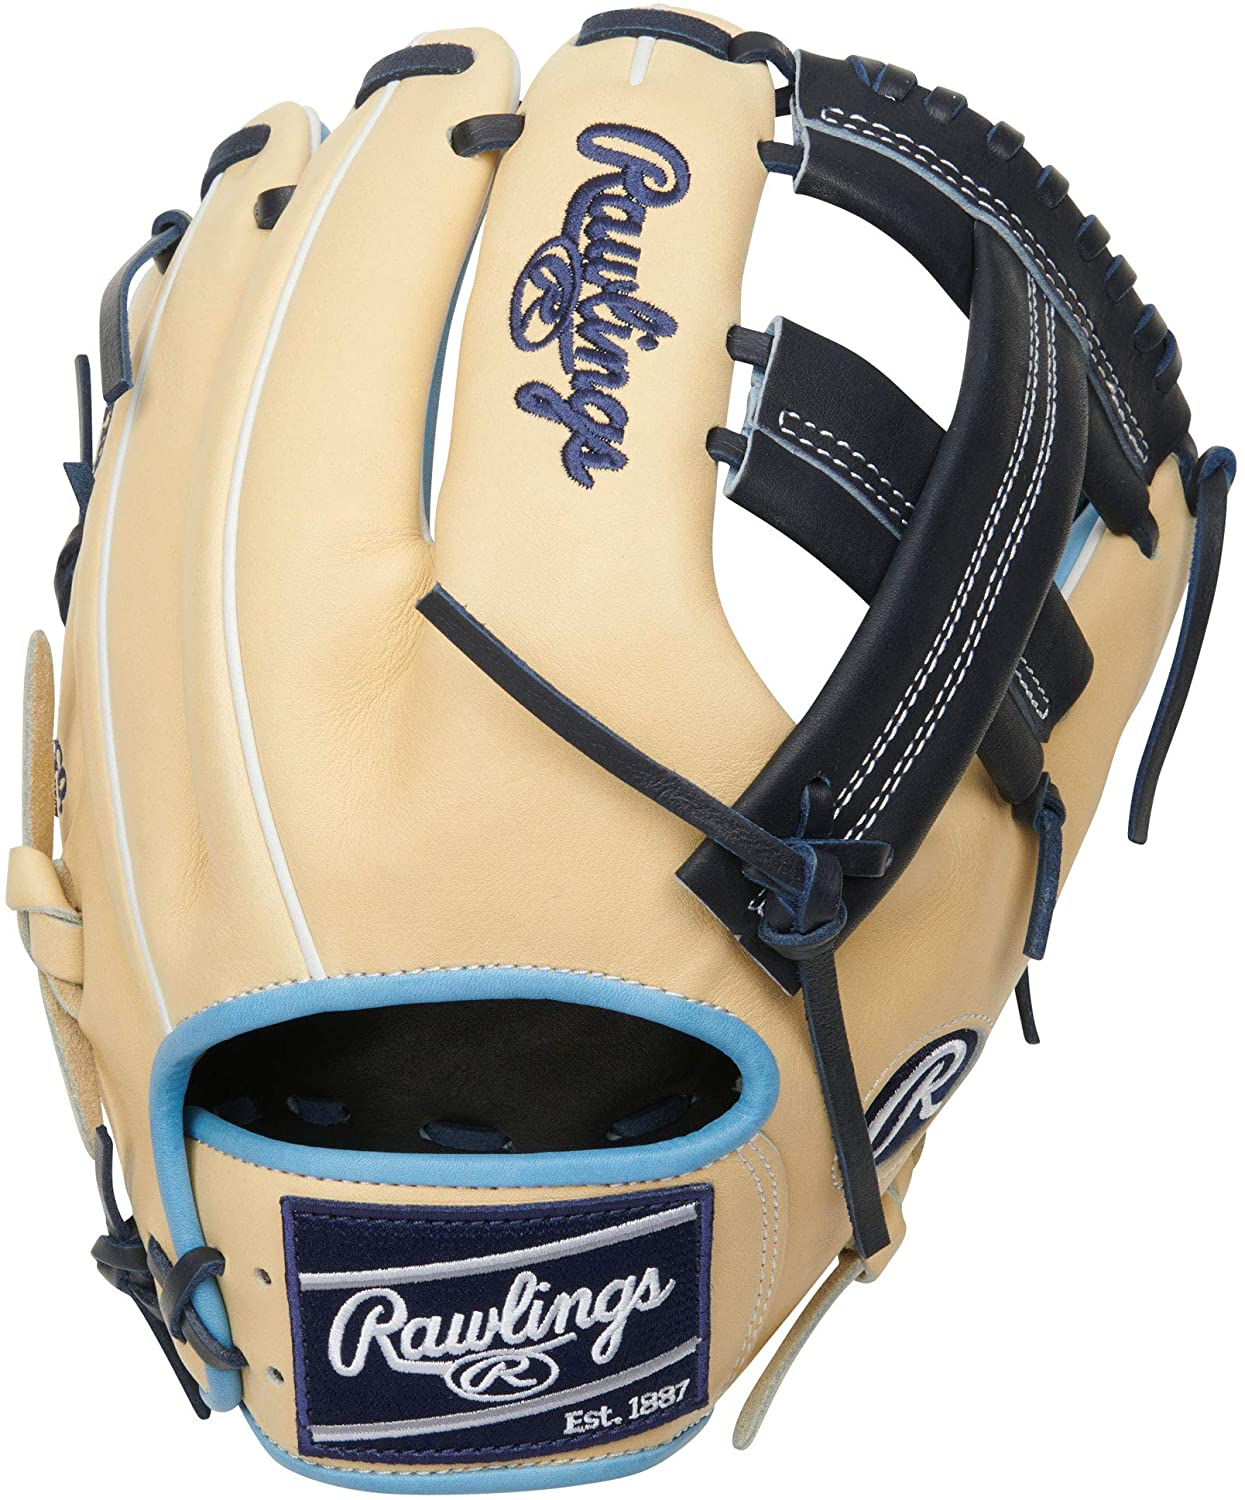 rawlings-heart-of-hide-11-5-i-web-baseball-glove-right-hand-throw PRO204-20CB-RightHandThrow  083321702303 <span>Constructed from Rawlings world-renowned Heart of the Hide steer leather Heart